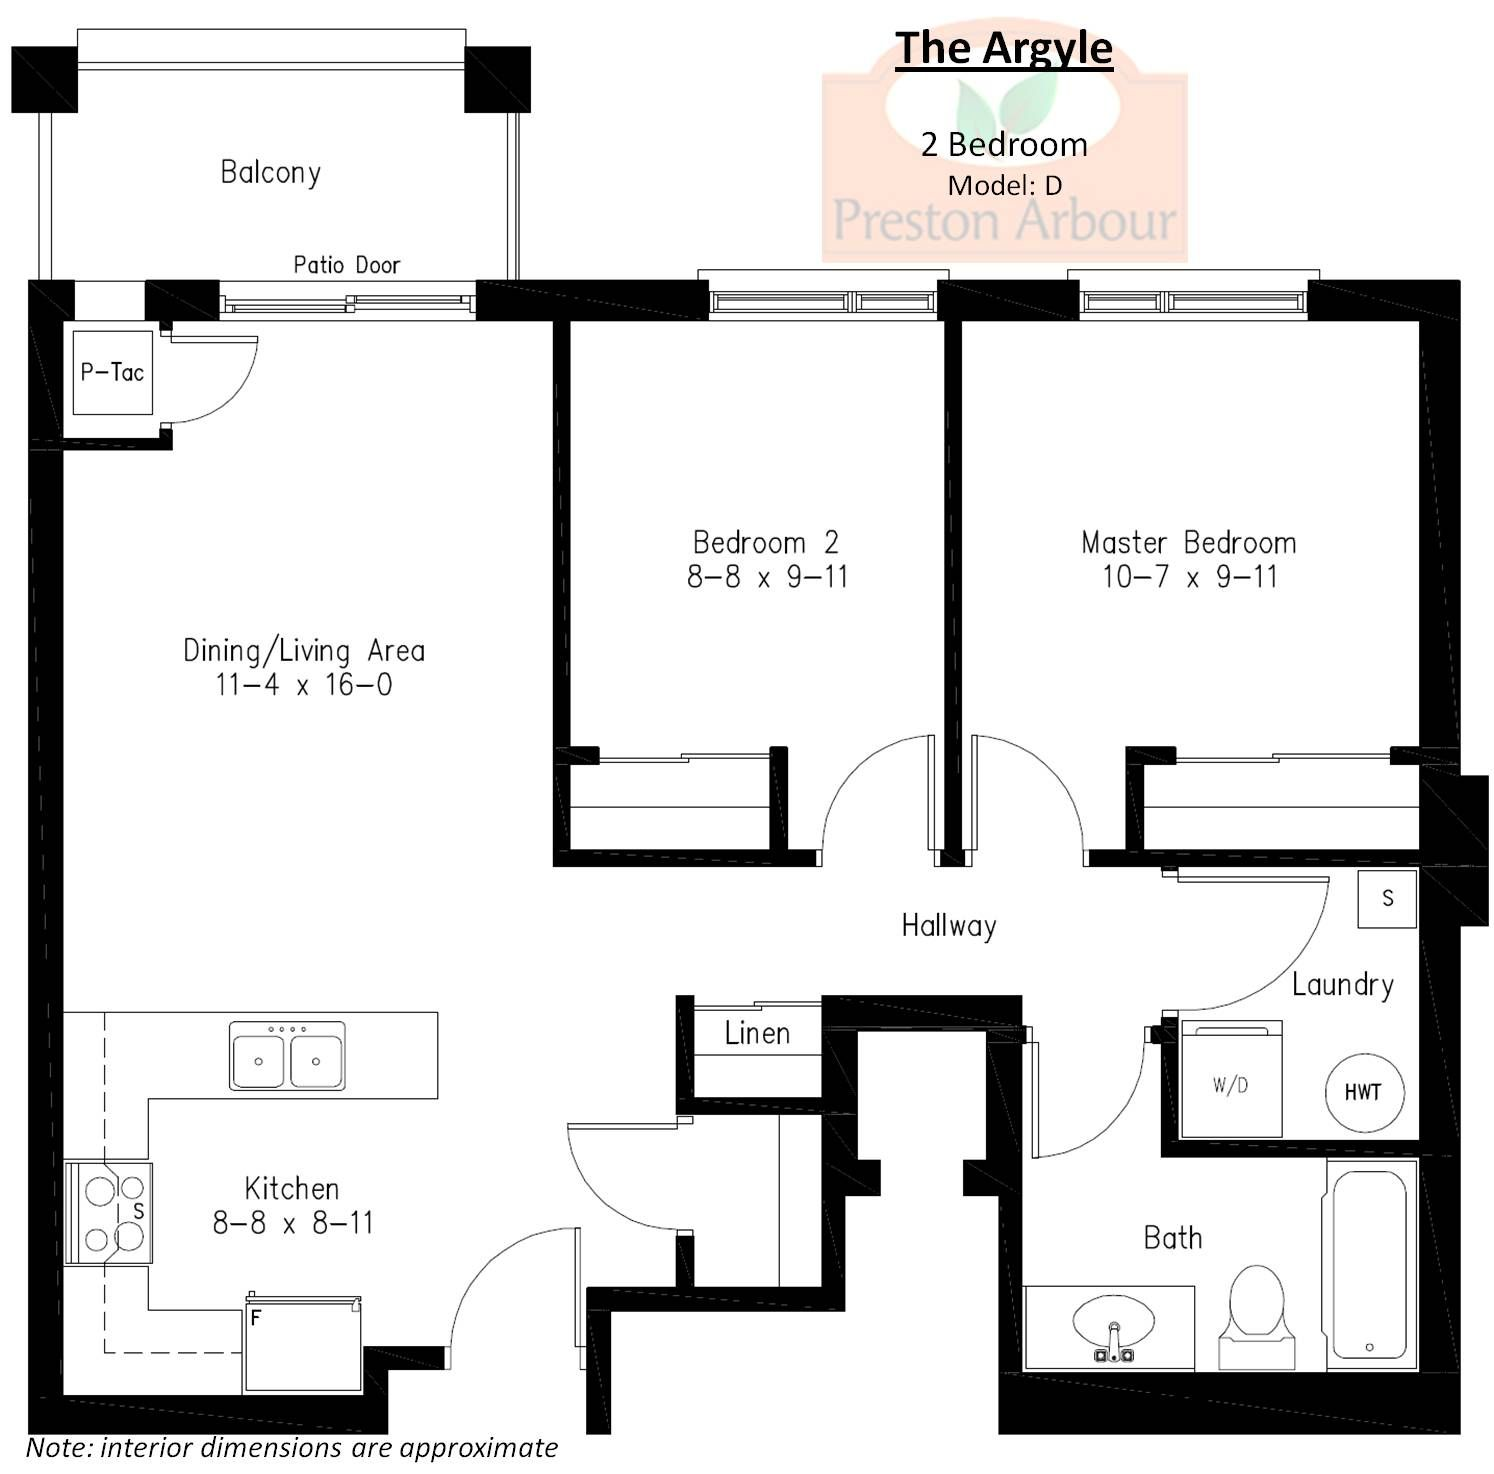 Free house floor plan design software blueprint maker online free free house floor plan design software blueprint maker online free malvernweather Image collections